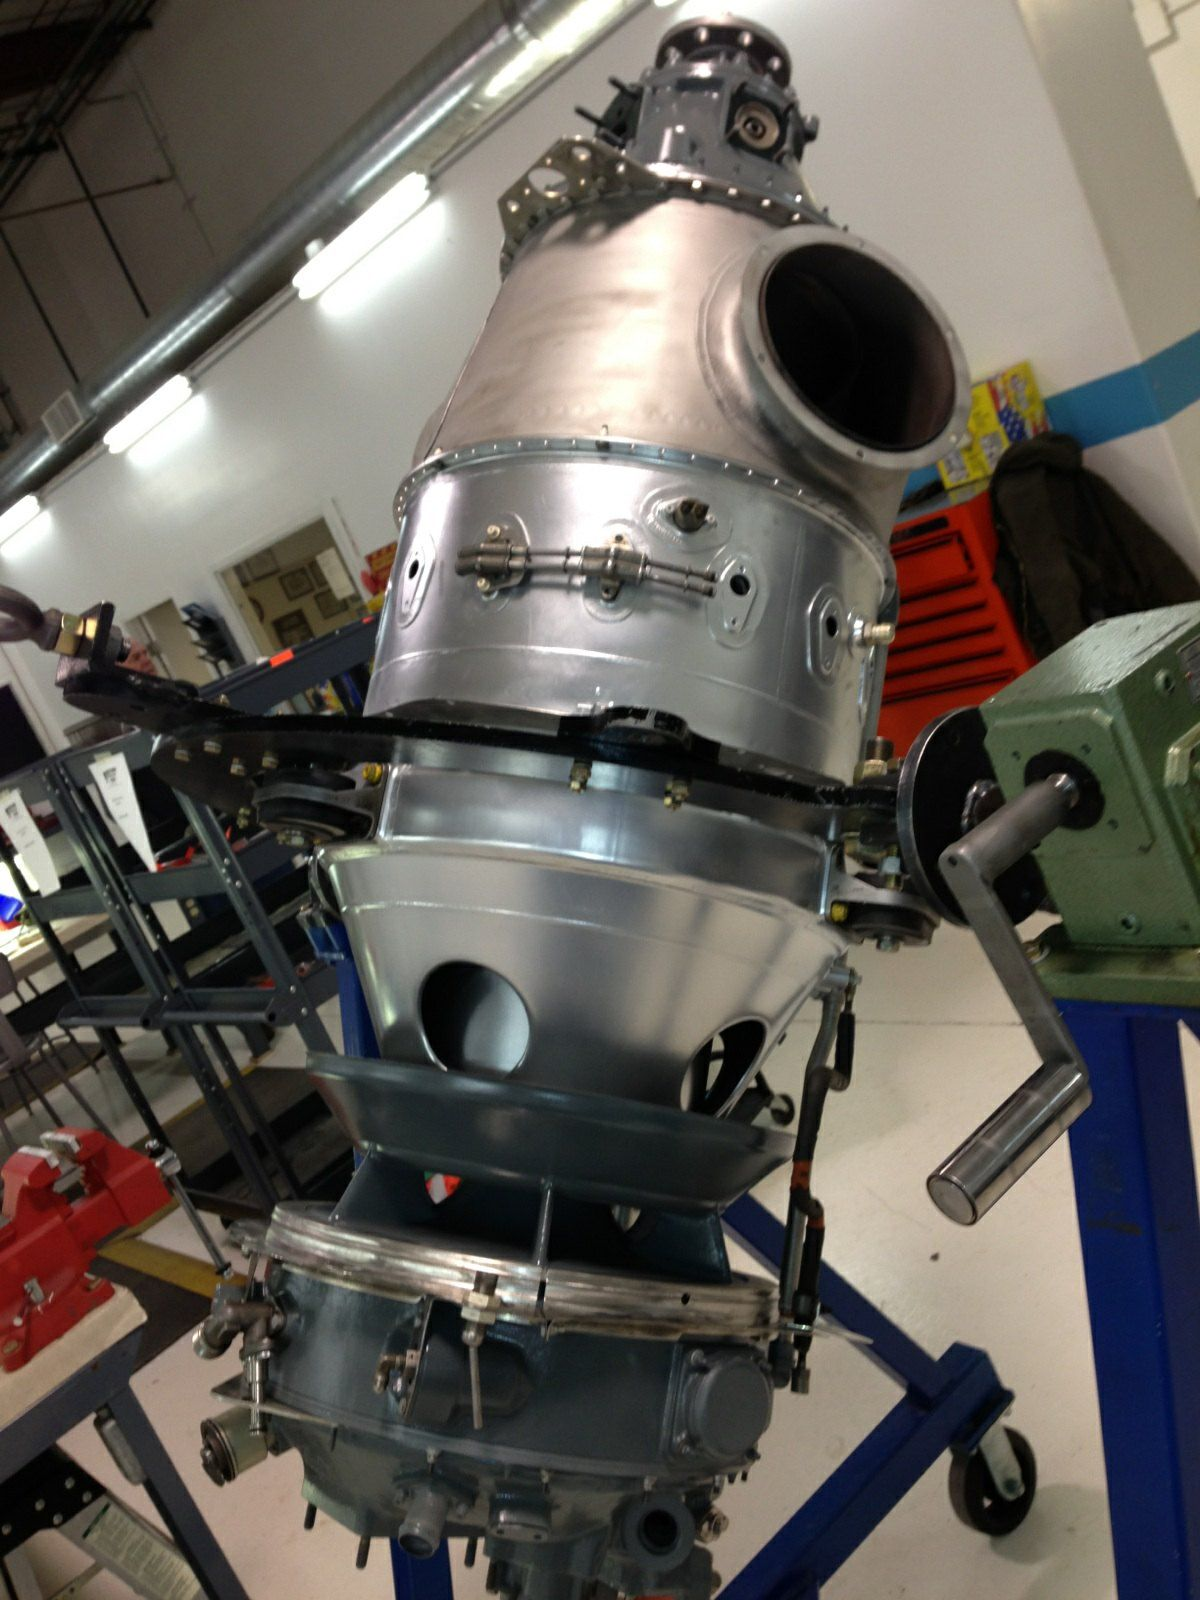 High Quality Pt6 Turbine Engines For Sale http